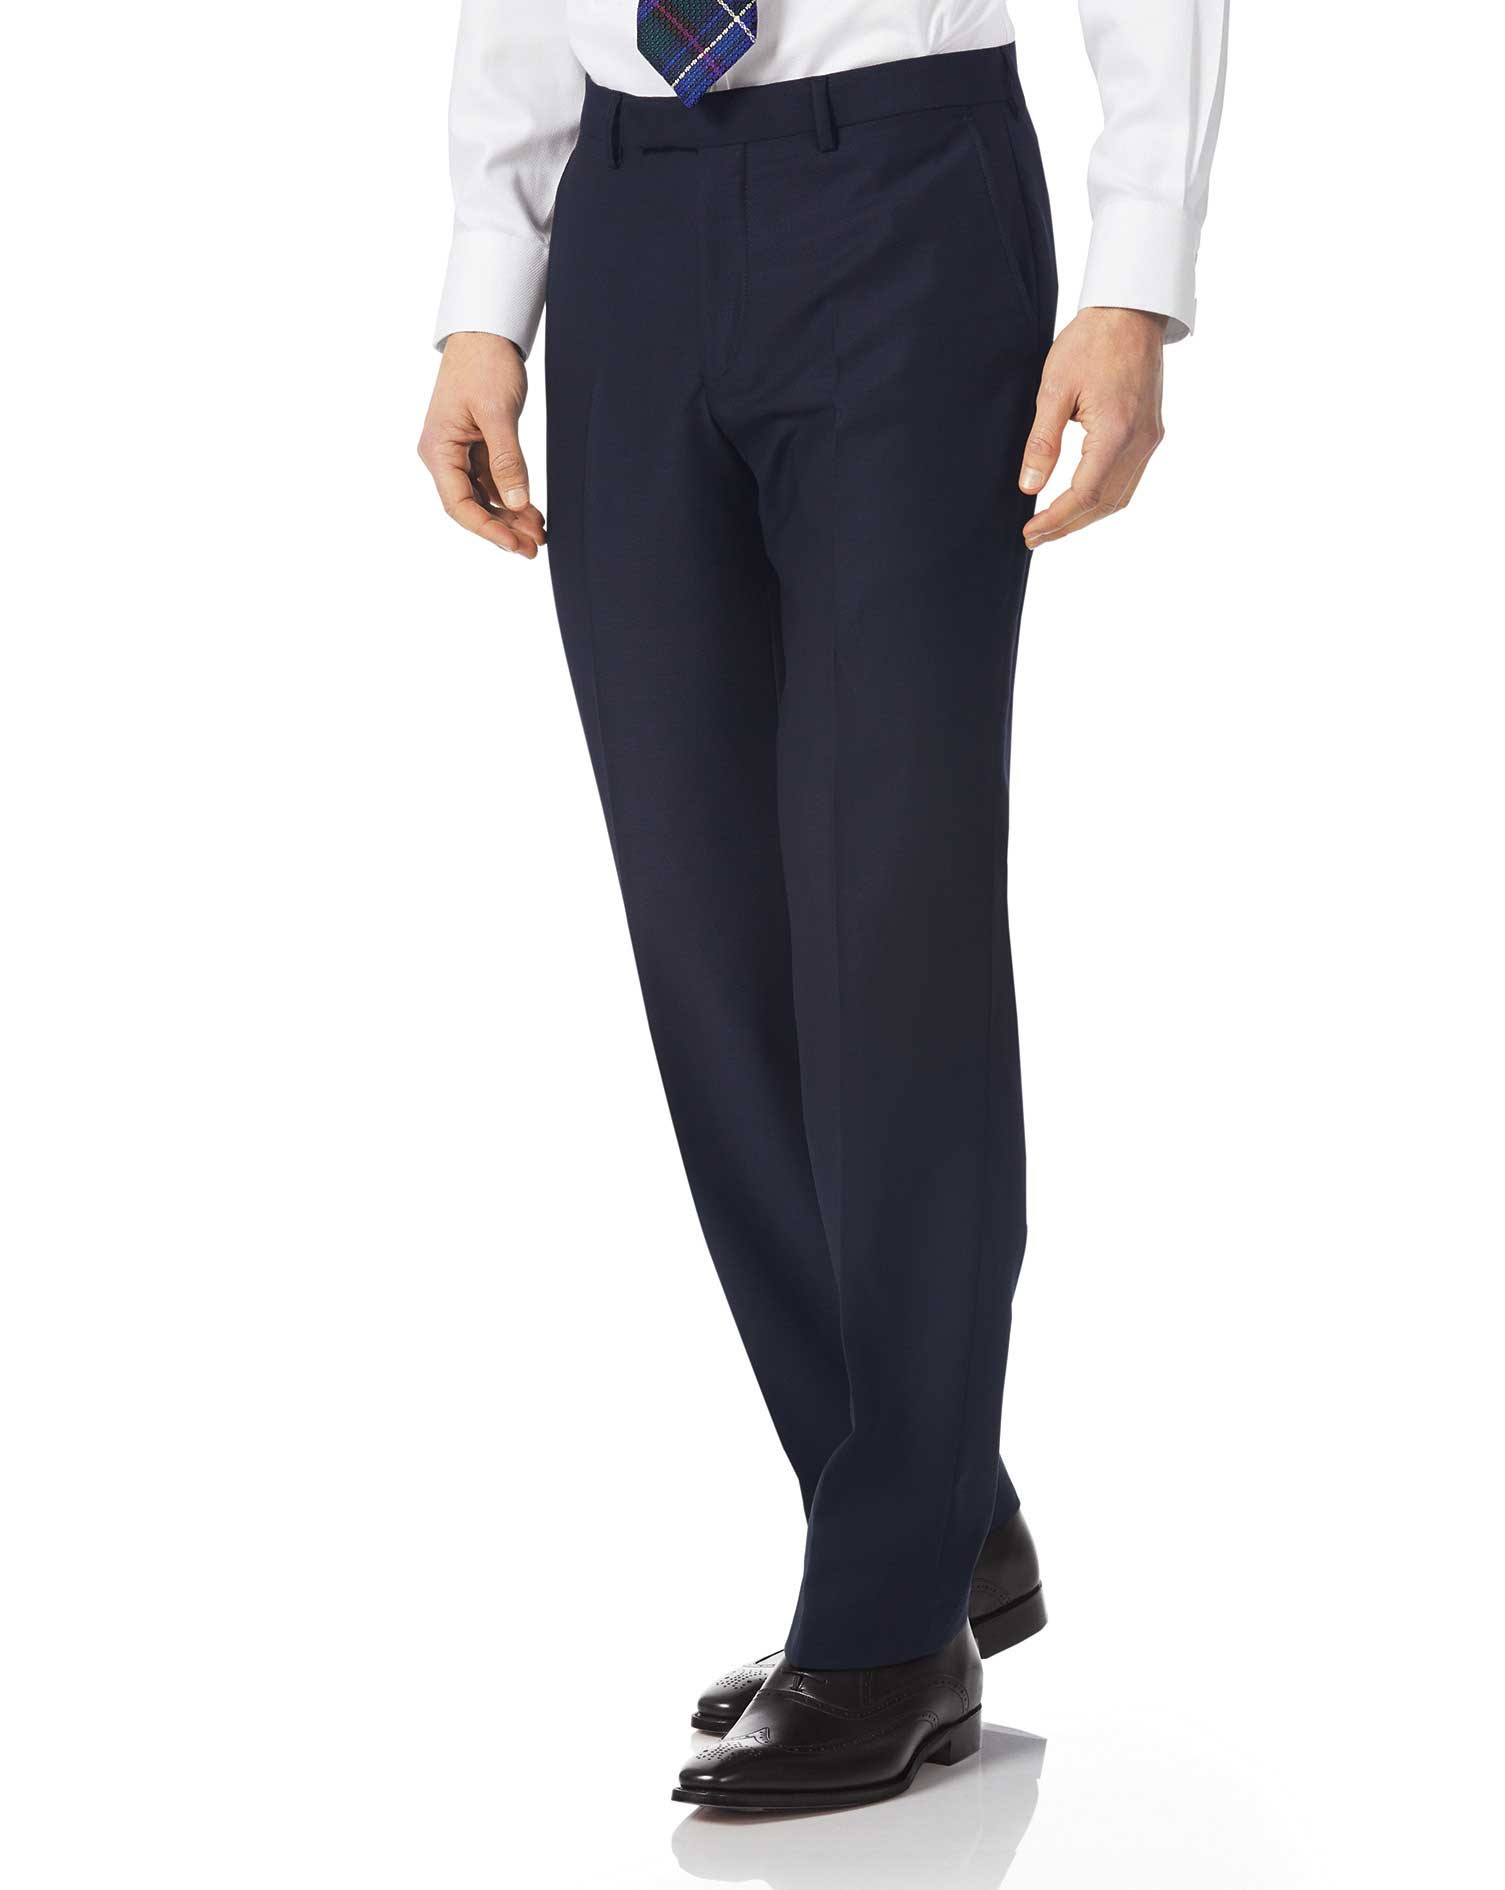 Navy Classic Fit Textured Italian Suit Trousers Size W36 L38 by Charles Tyrwhitt